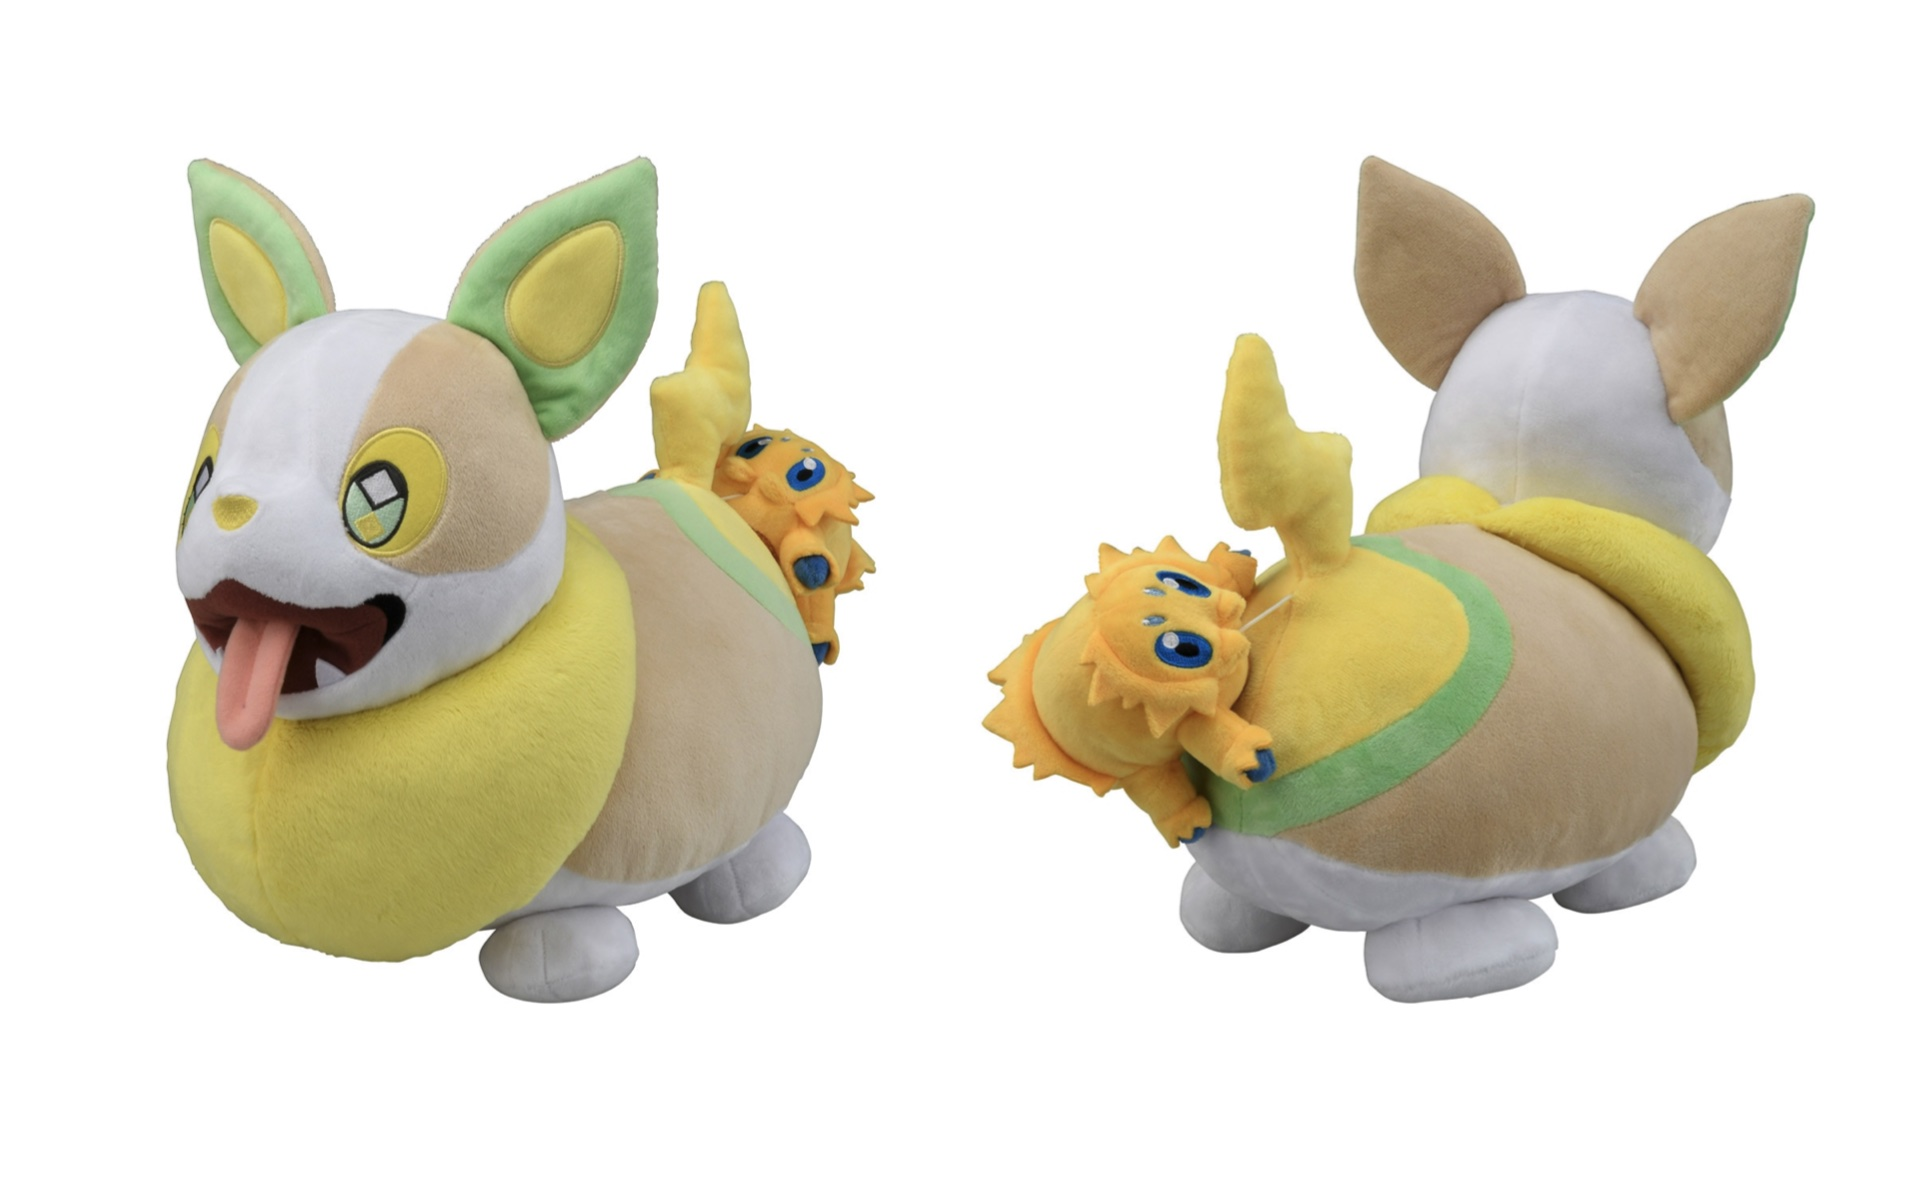 A plush toy of Joltik attached to Yamper's butt, seen from the front and the back